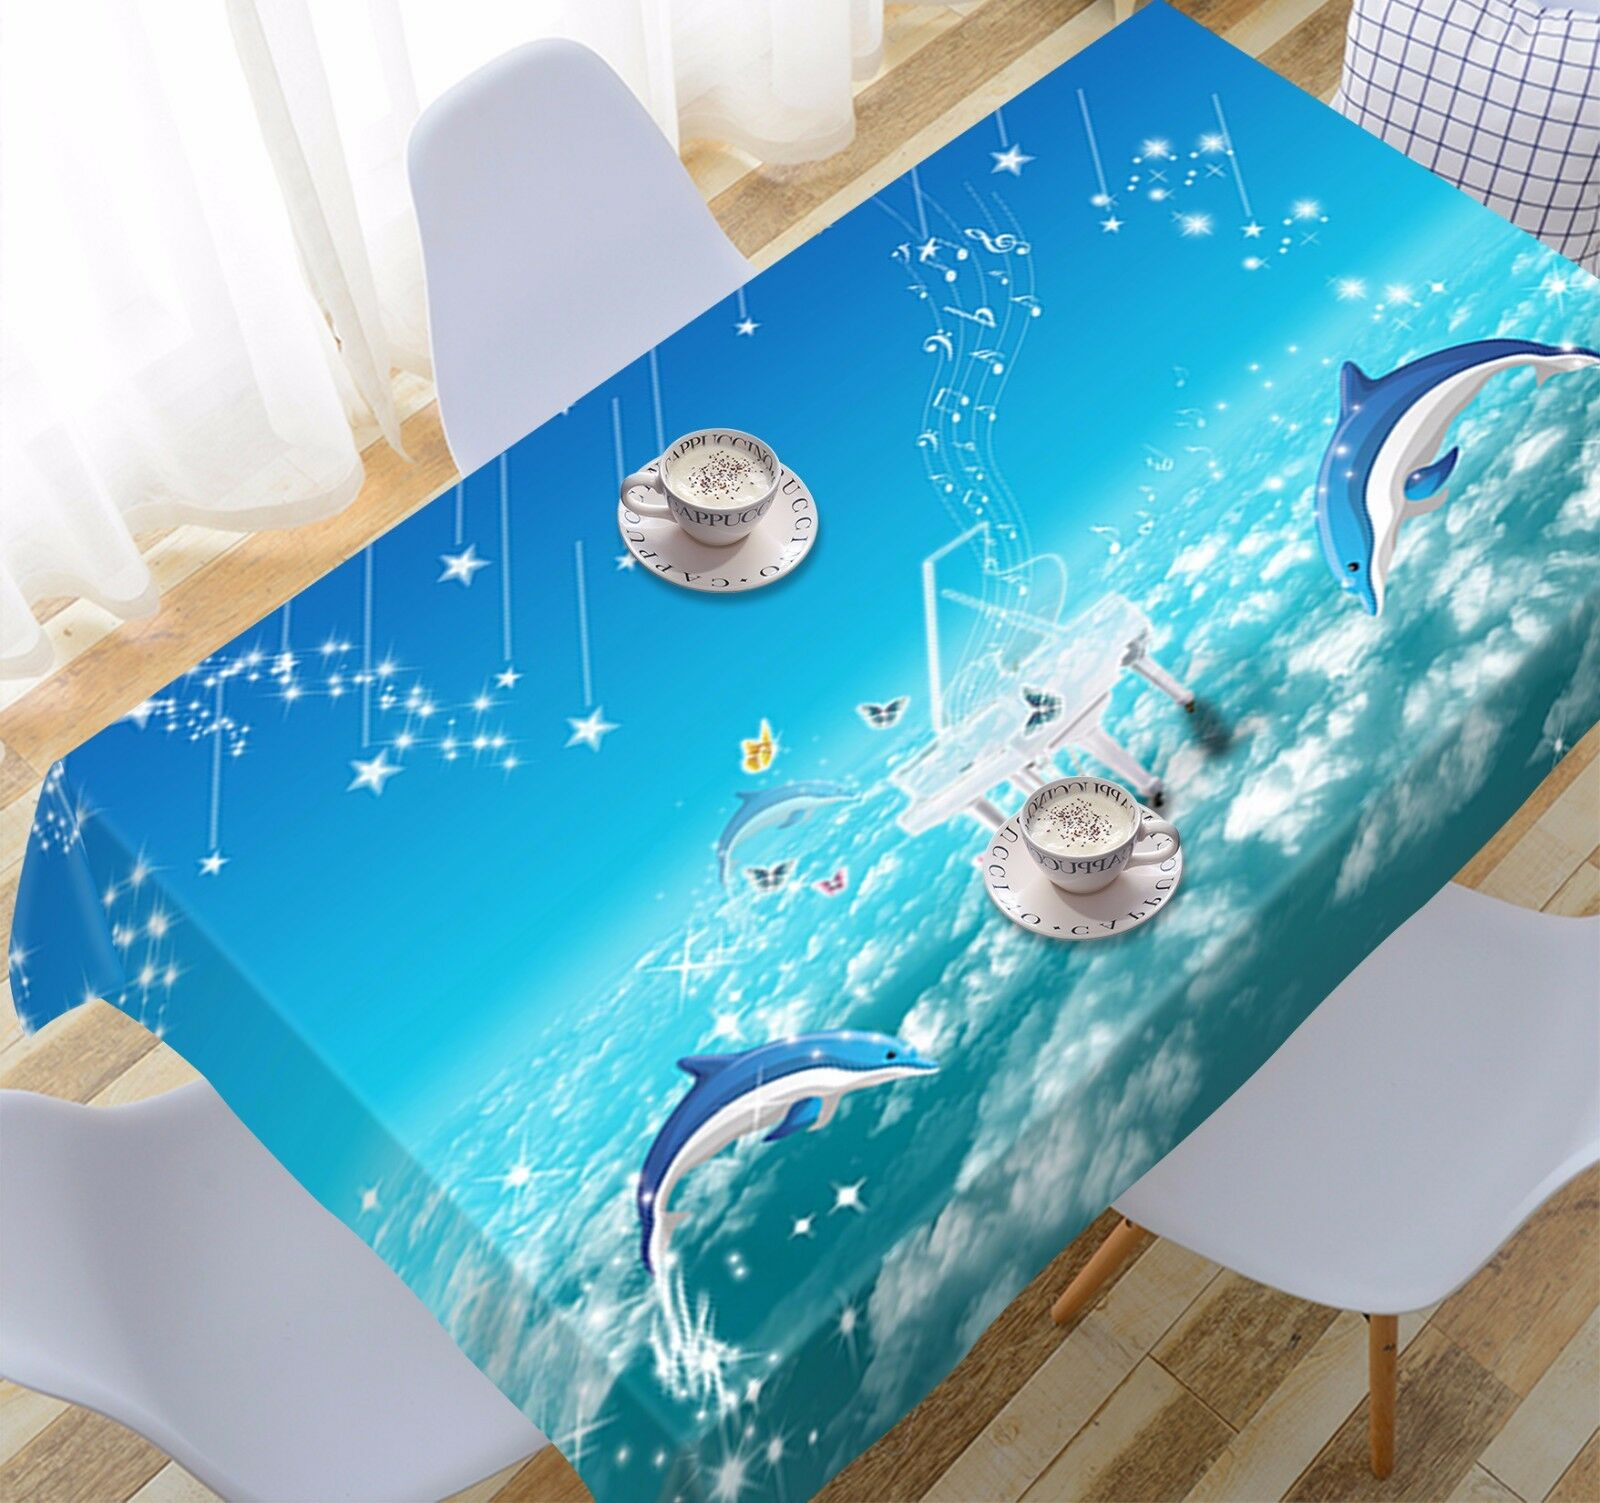 3D Dolphin 938 Tablecloth Tablecloth Tablecloth Table Cover Cloth Birthday Party Event AJ WALLPAPER UK 4a6c39